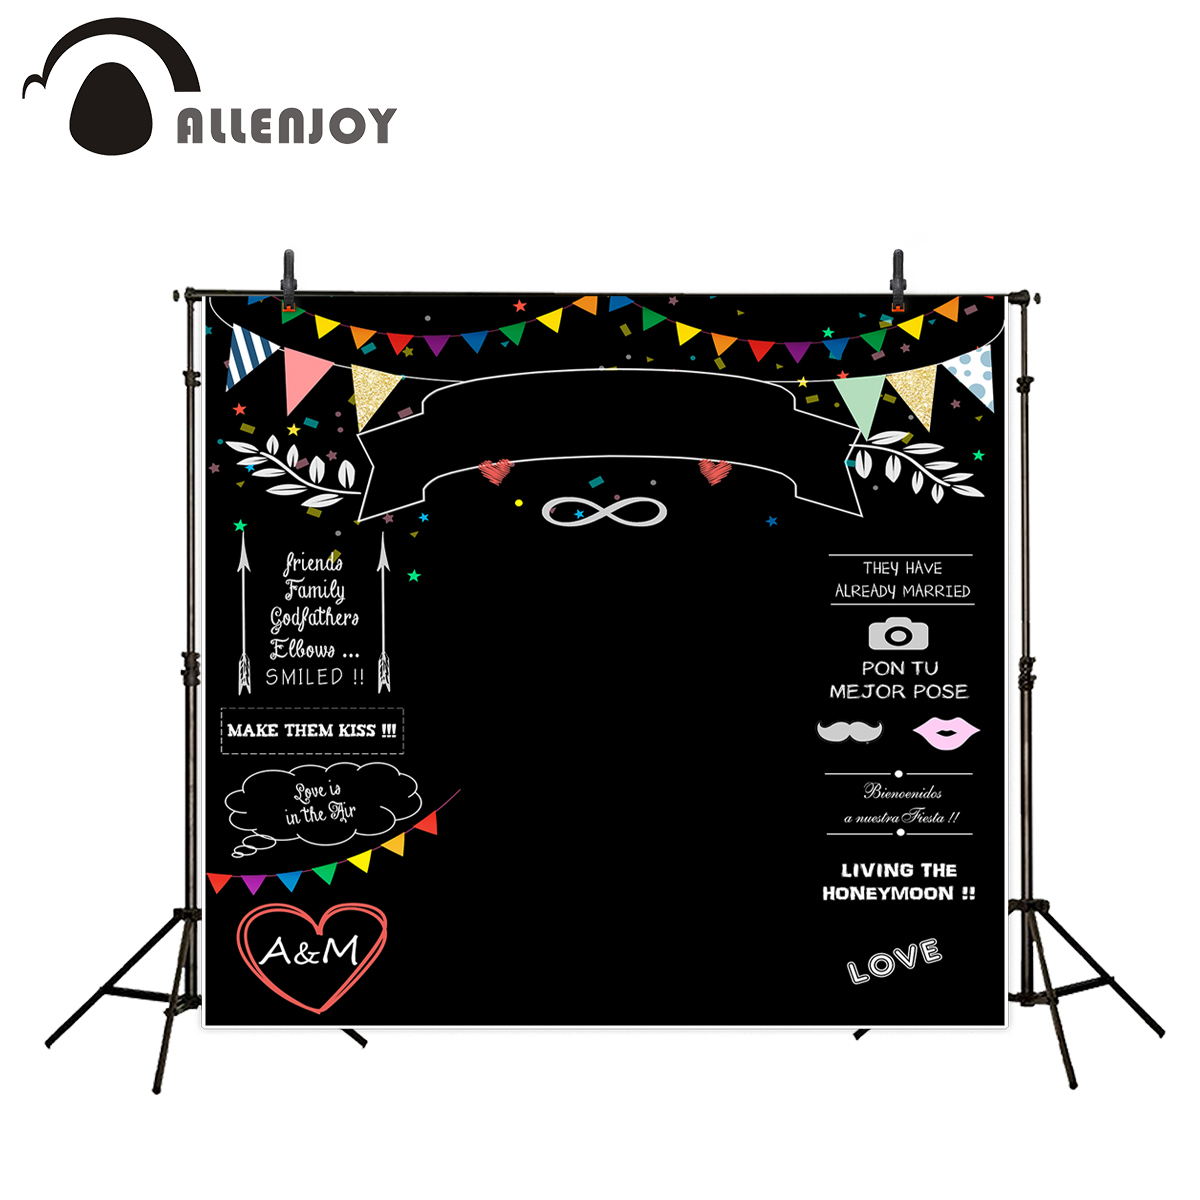 Allenjoy photography backdrops Wedding backdrop blackboard colorful flags banners love happy wedding custom photocall a photo huayi 10x20ft wood letter wall backdrop wood floor vinyl wedding photography backdrops photo props background woods xt 6396